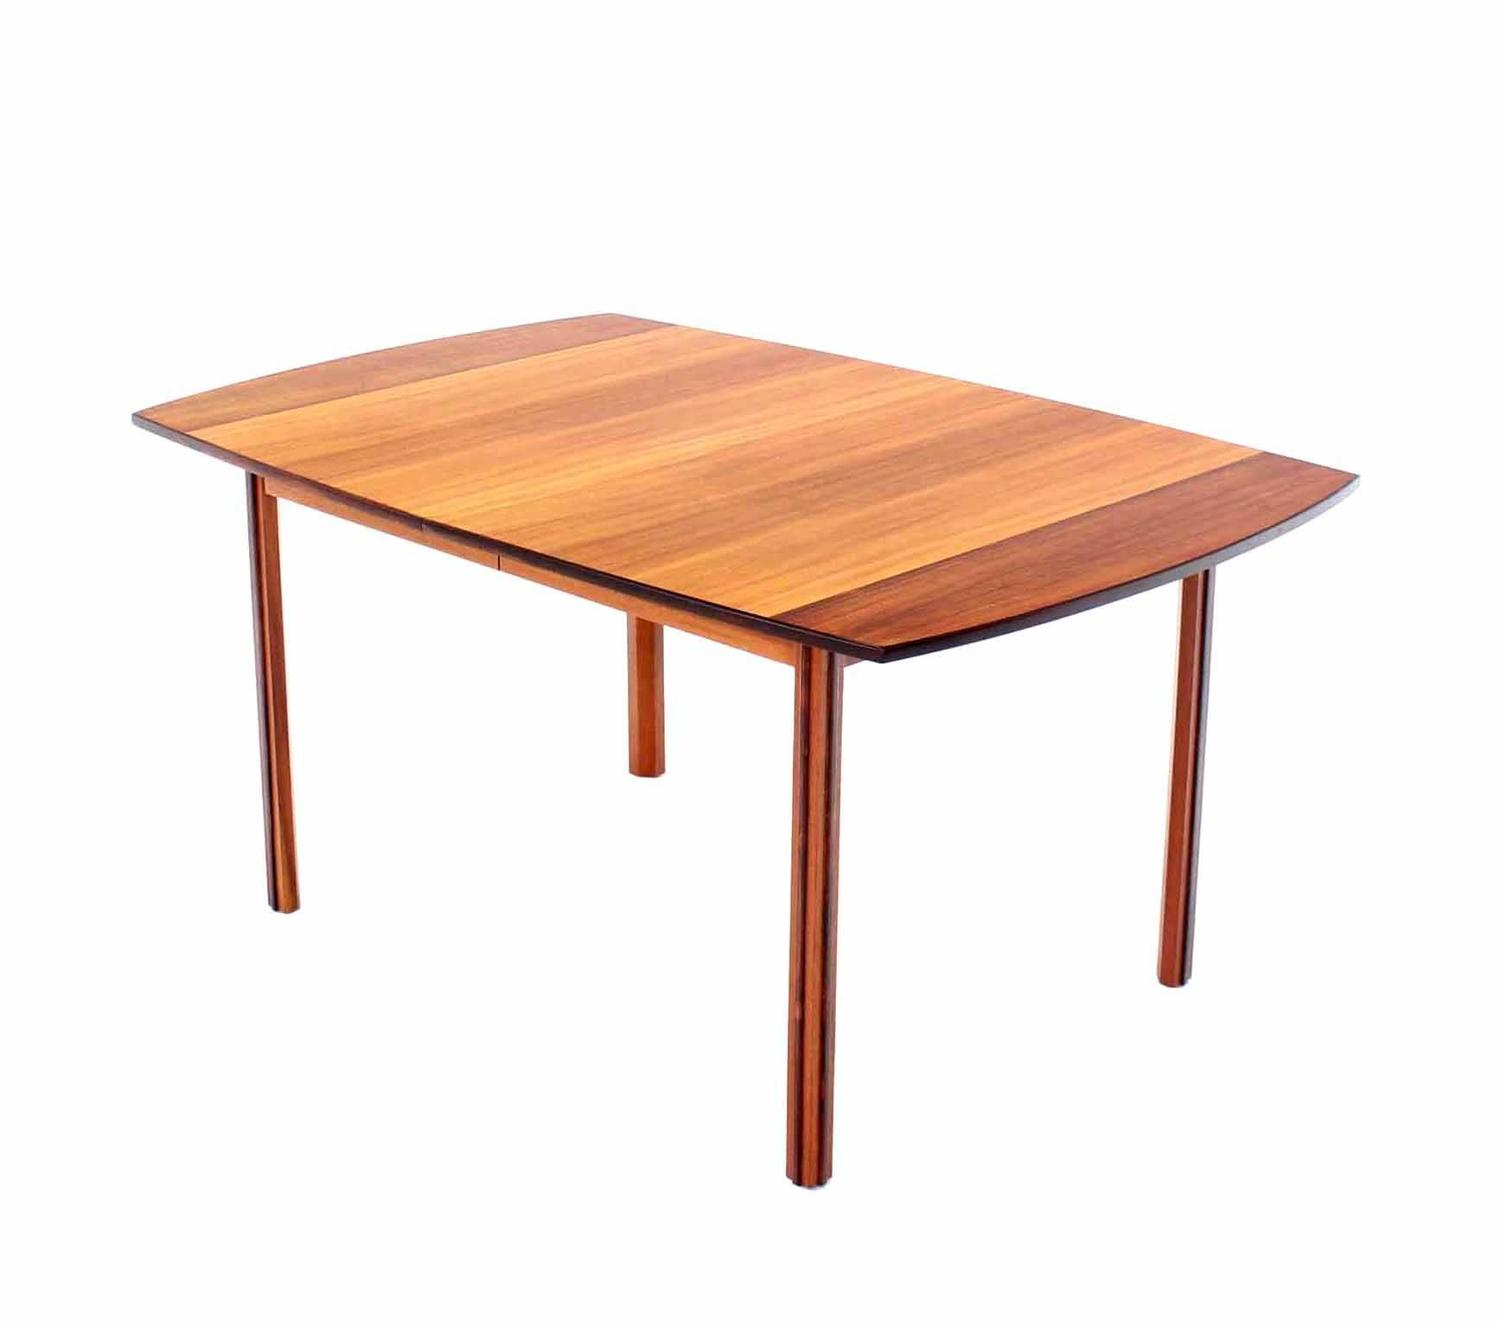 Danish Mid Century Modern Teak Dining Room Table With Two  : IMG0912z from 50han.com size 1500 x 1324 jpeg 50kB